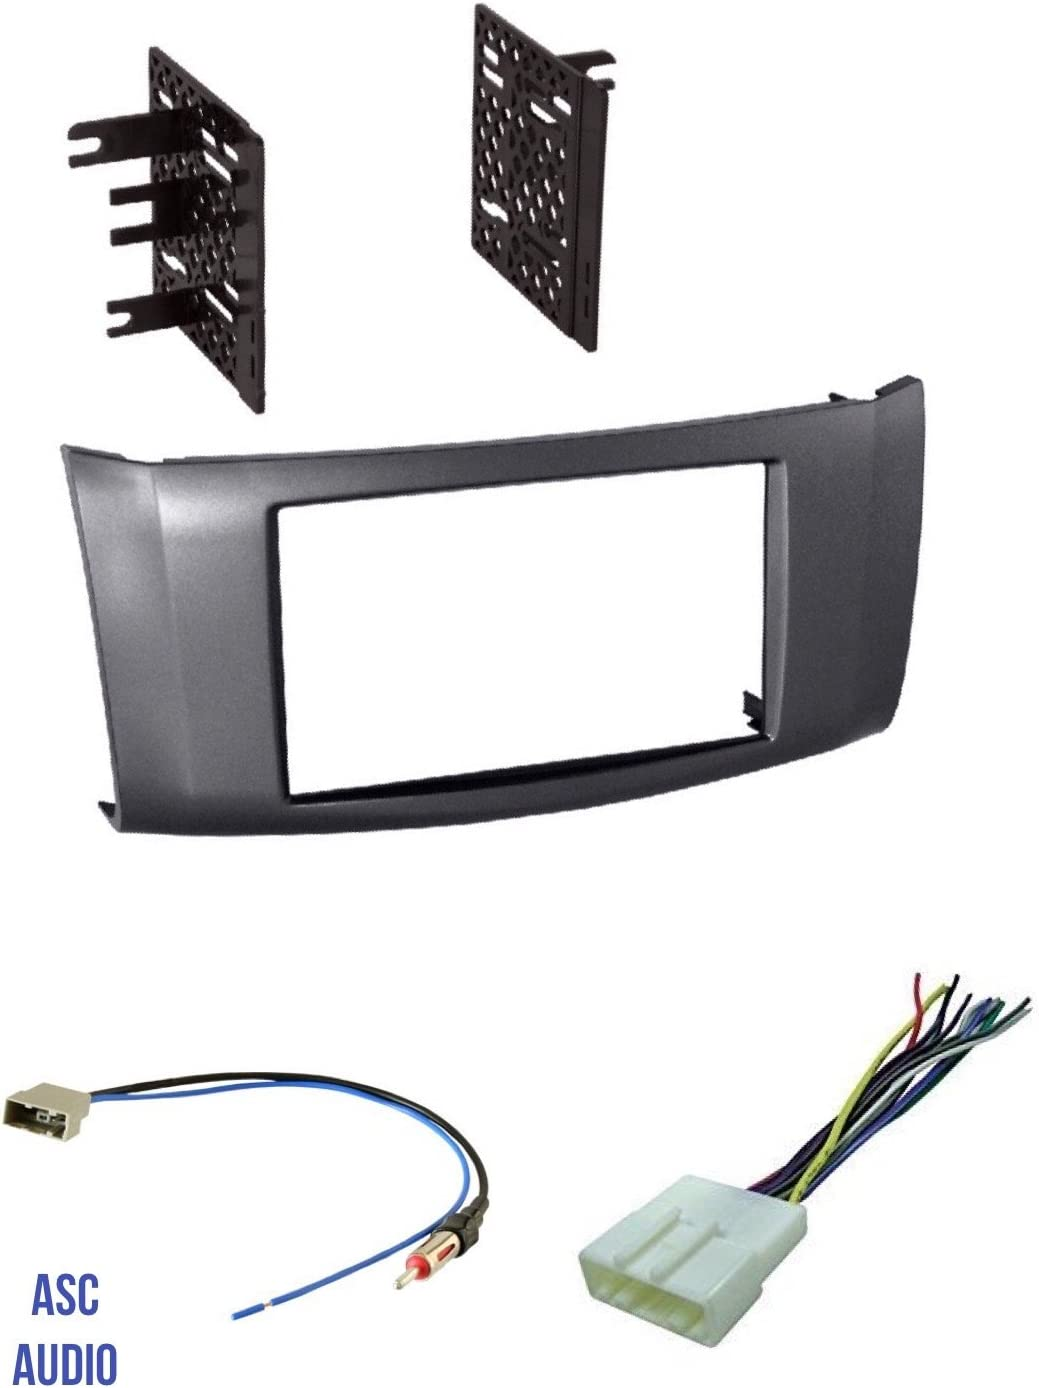 Car Stereo Radio Install Dash Trim Face Mount Kit Combo for 07-12 Nissan Sentra